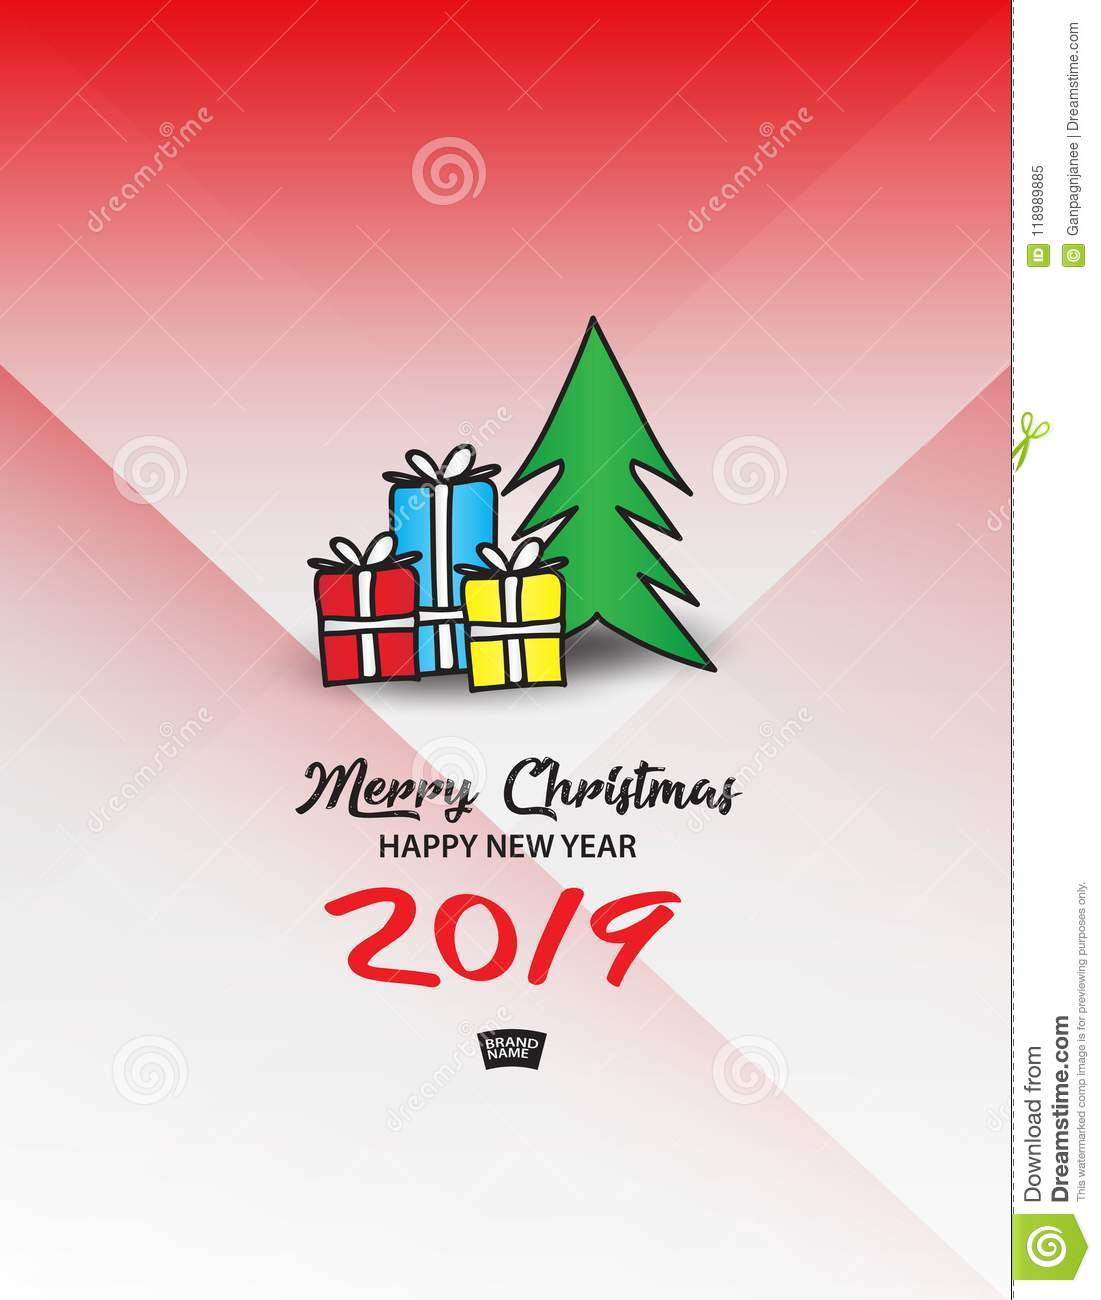 Gift Boxes With Christmas Tree Vector Illustration Merry Christmas